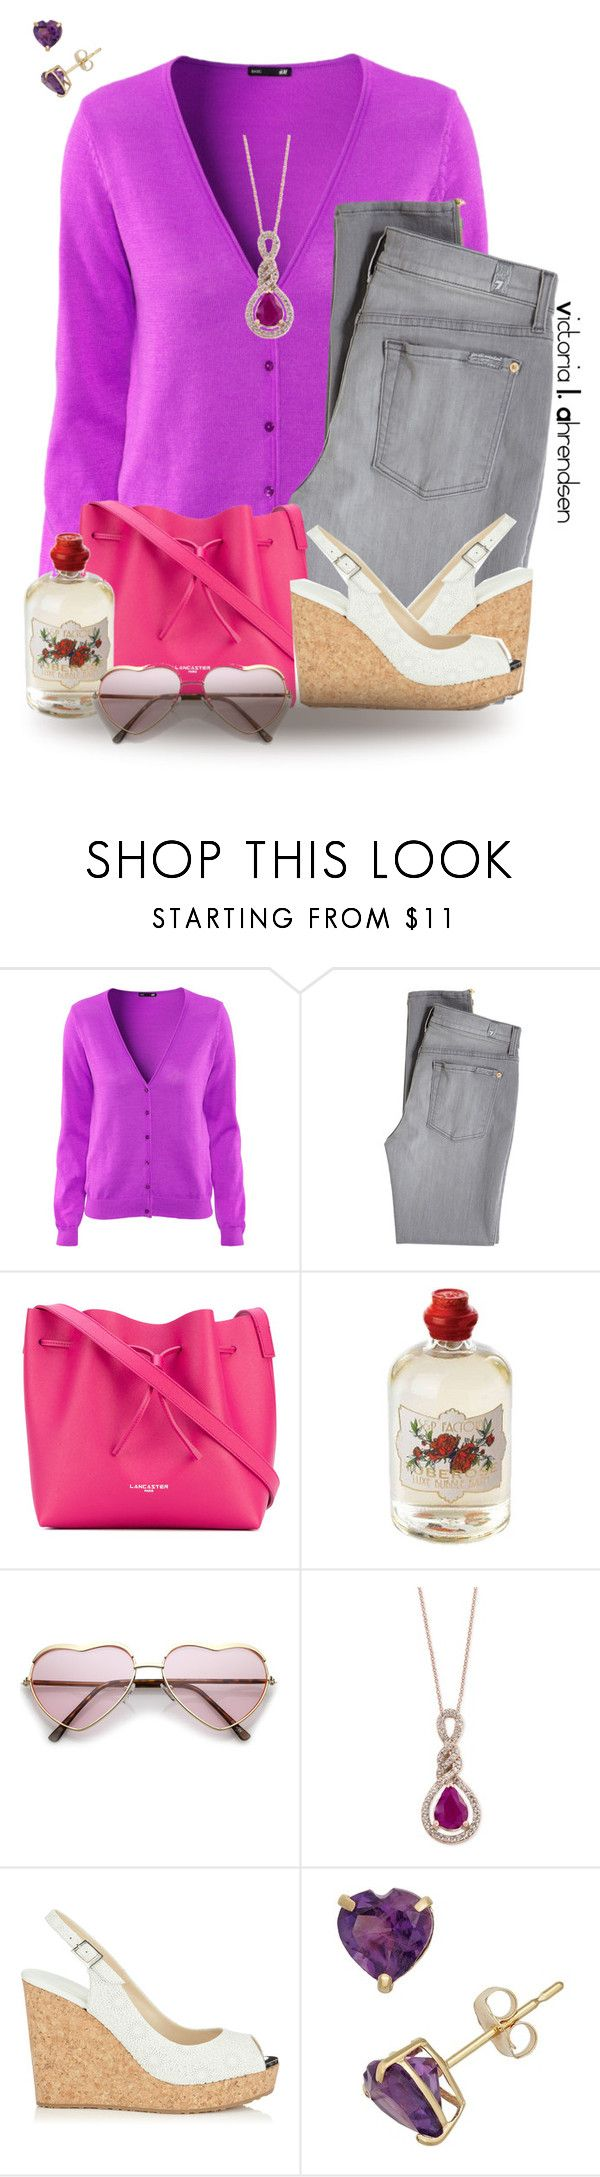 """""""Outfit Set #128! :-)"""" by vahrendsen1988 ❤ liked on Polyvore featuring H&M, 7 For All Mankind, Lancaster, Soap & Paper Factory, Effy Jewelry and Jimmy Choo"""